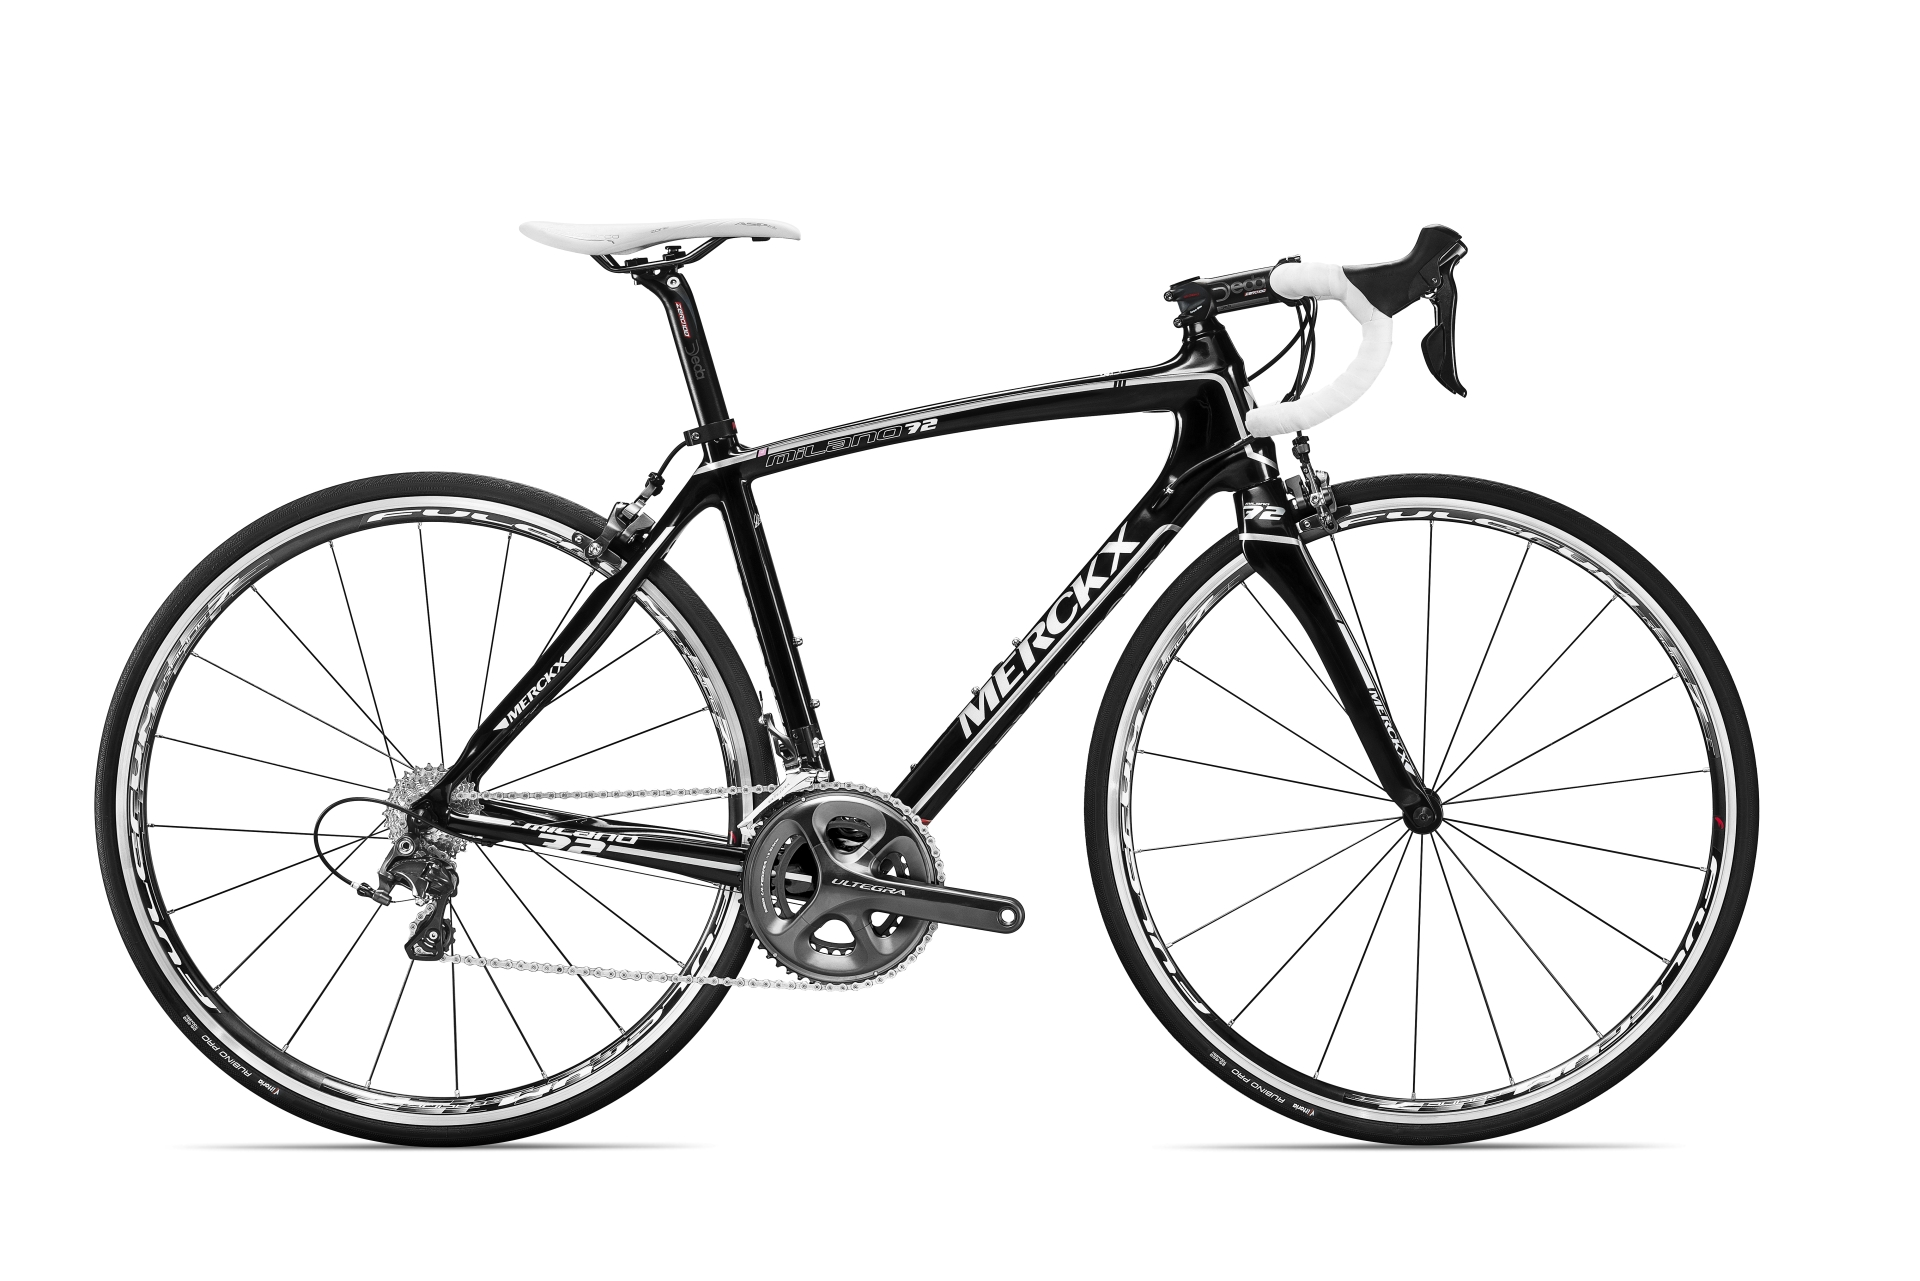 New Eddy Merckx Bikes for Speed, Endurance, Women and